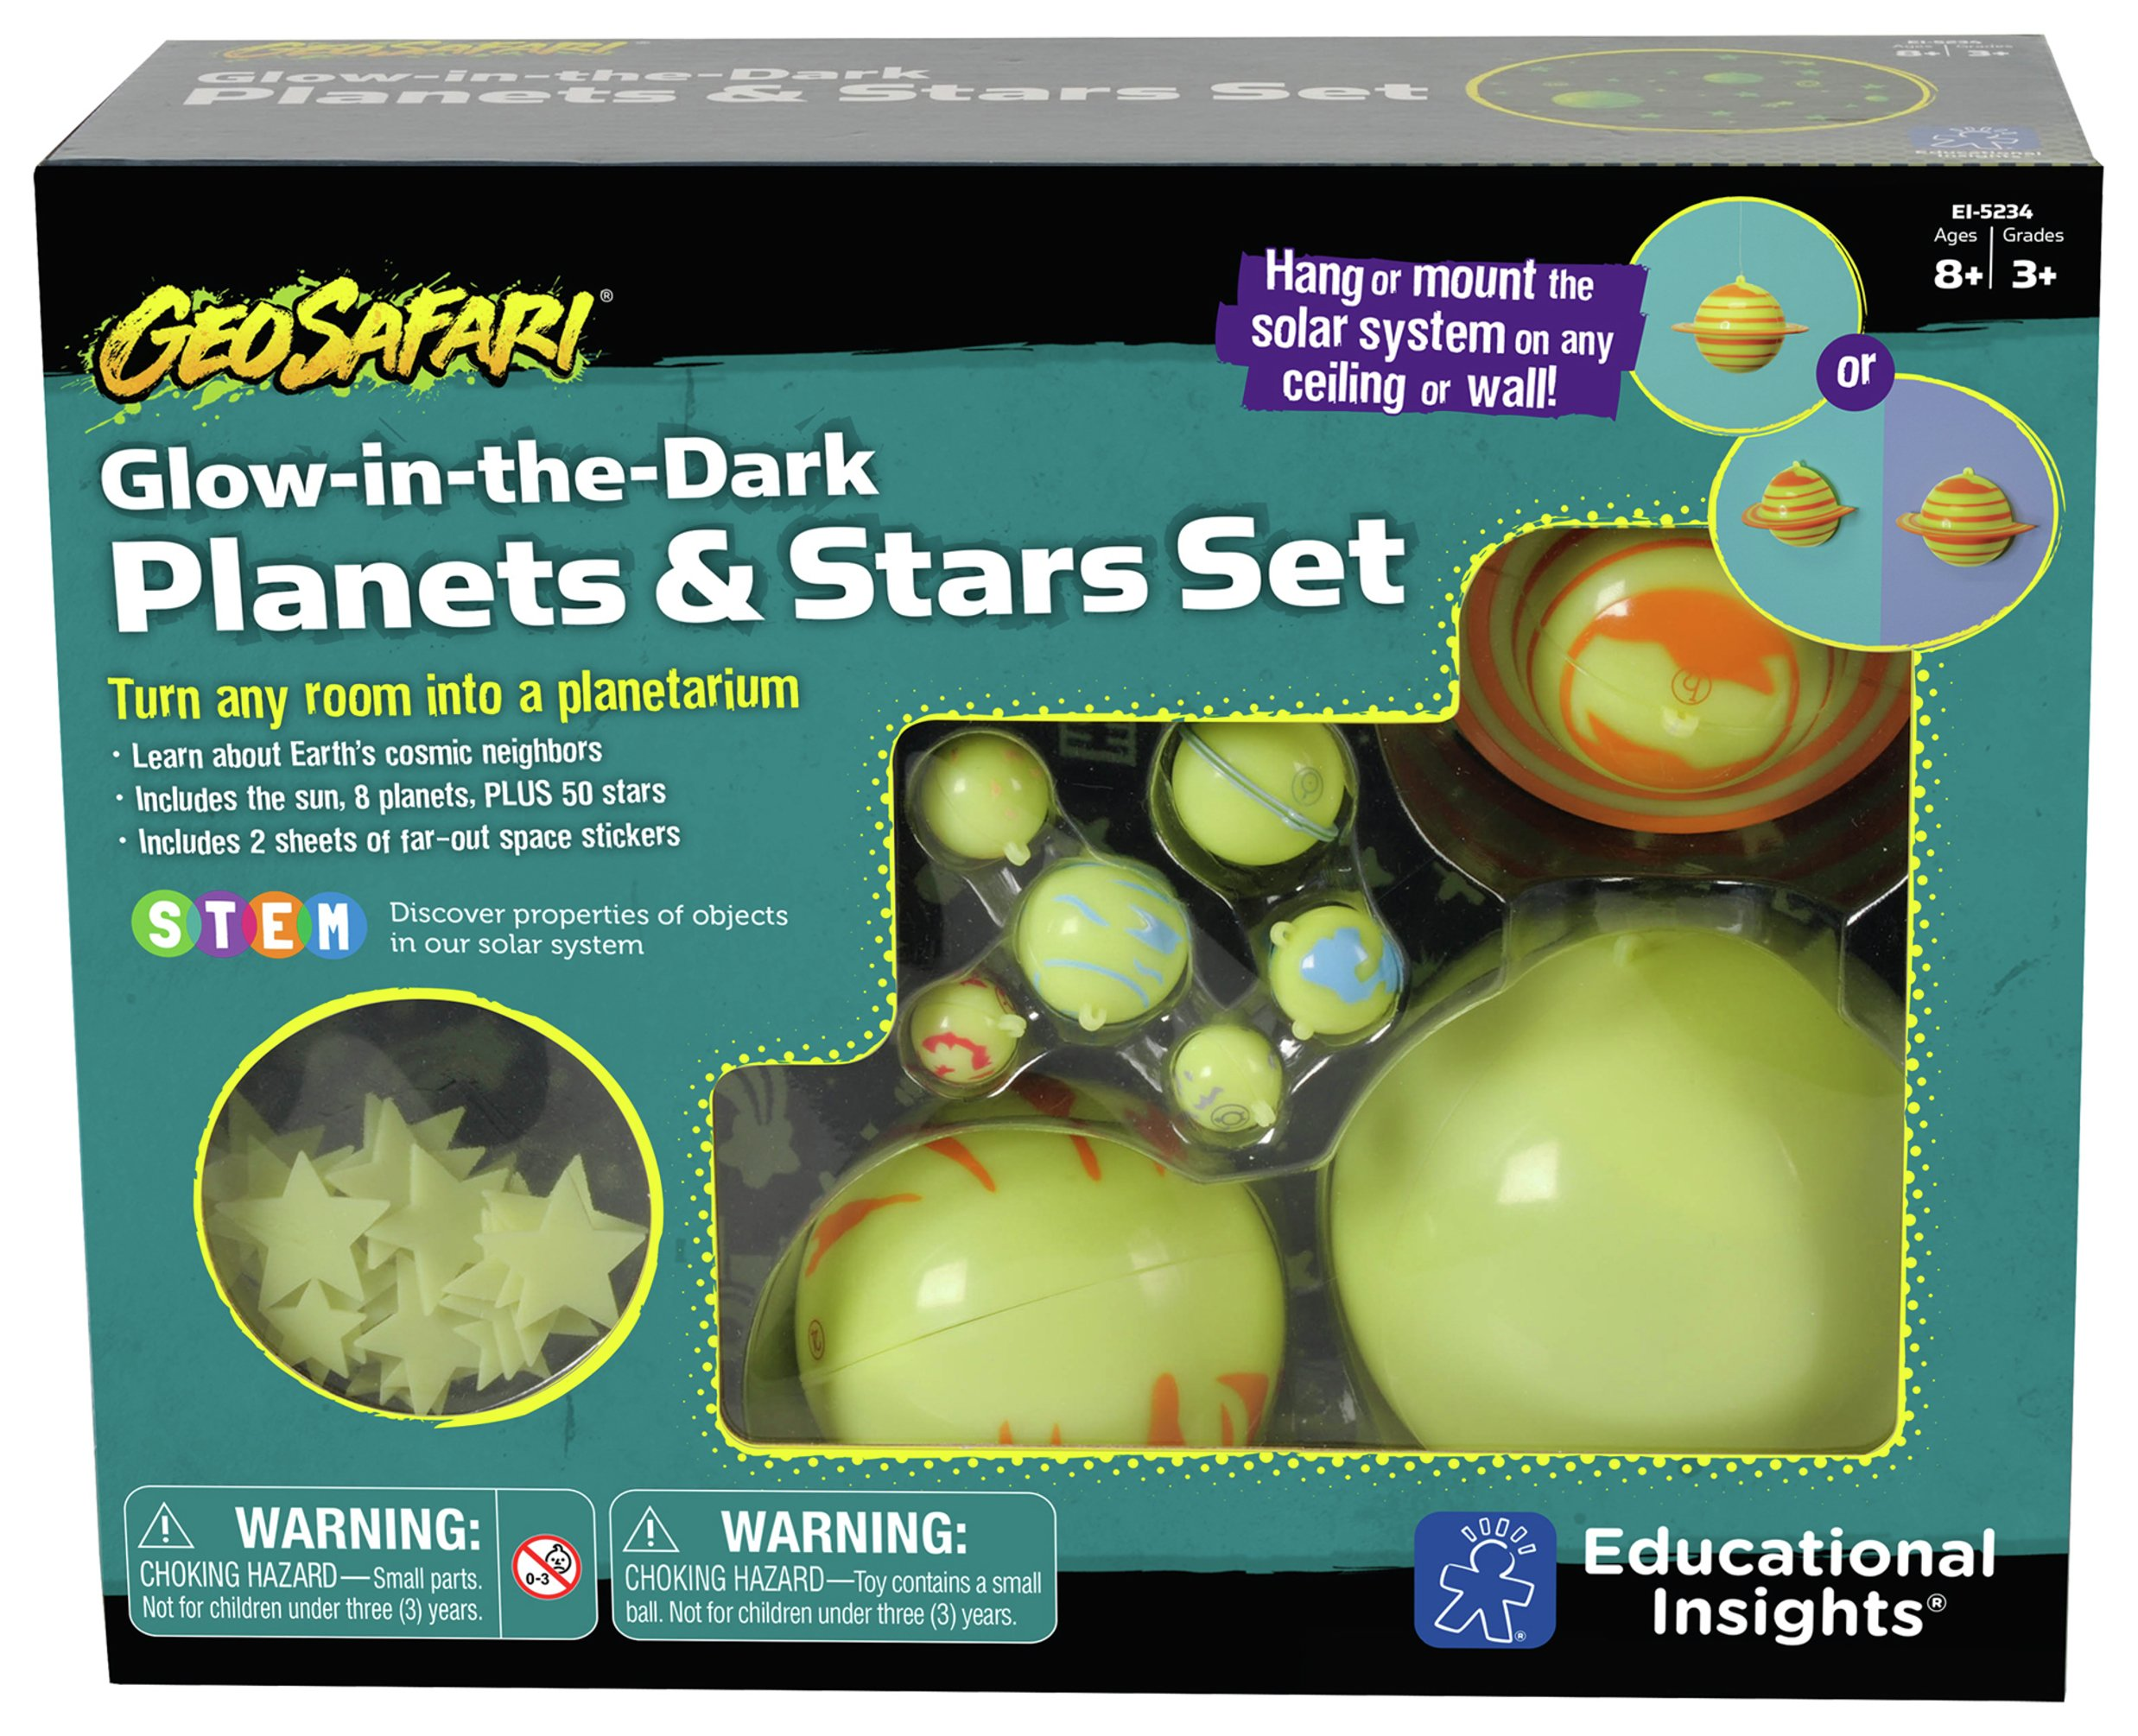 Sale On Geosafari Glow In The Dark Planets And Stars